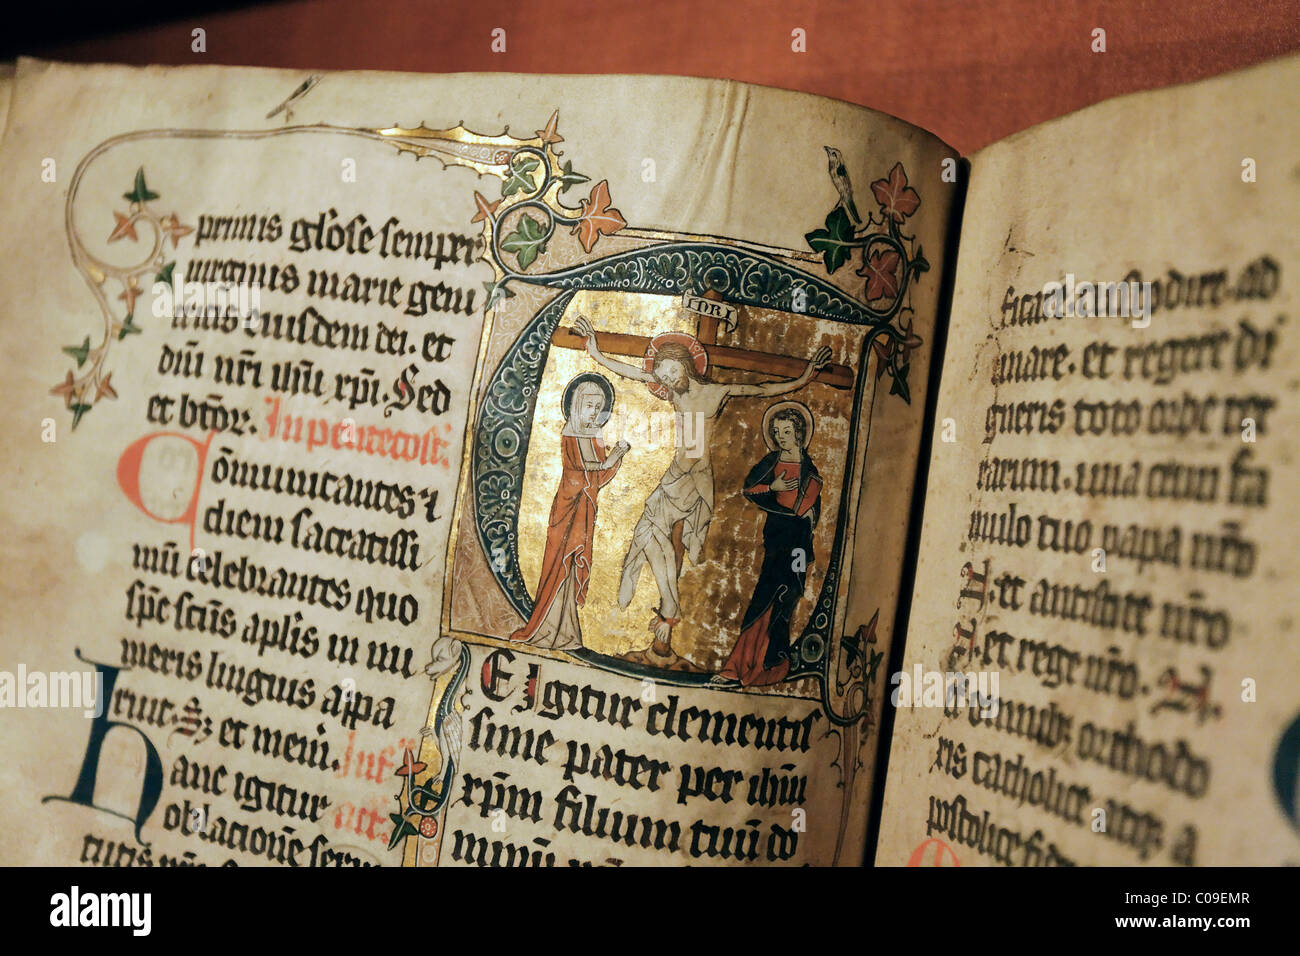 Handwritten missal with artistic illuminations, initial with crucifixion, illumination, Stiftsmuseum Museum Xanten - Stock Image